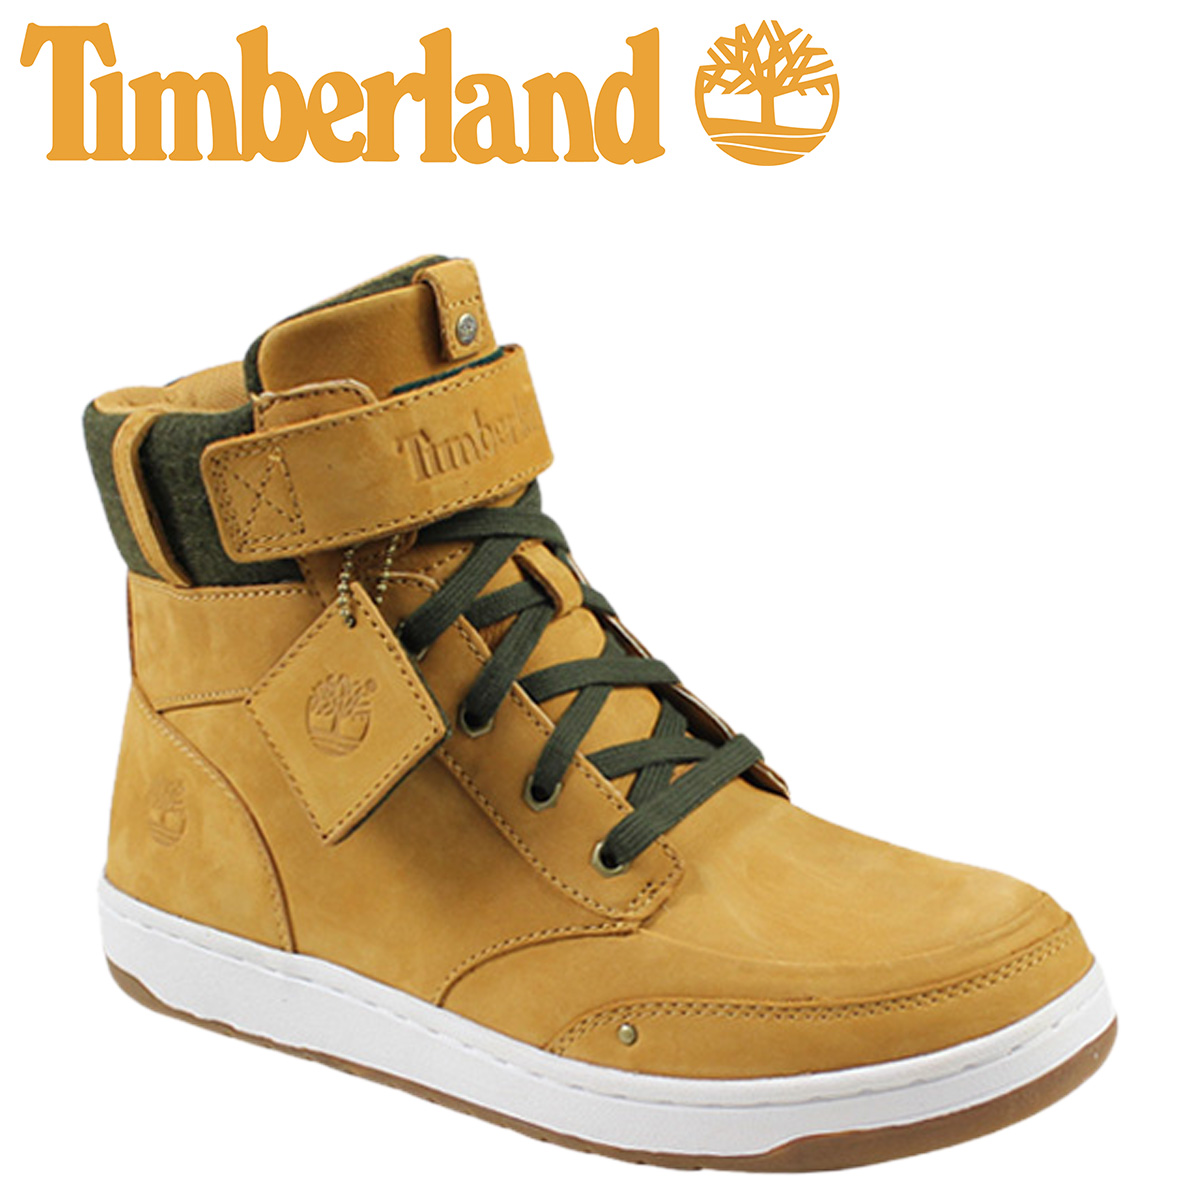 06f176af8ffc Whats up Sports   SOLD OUT  Timberland Timberland marvelous high-top ...